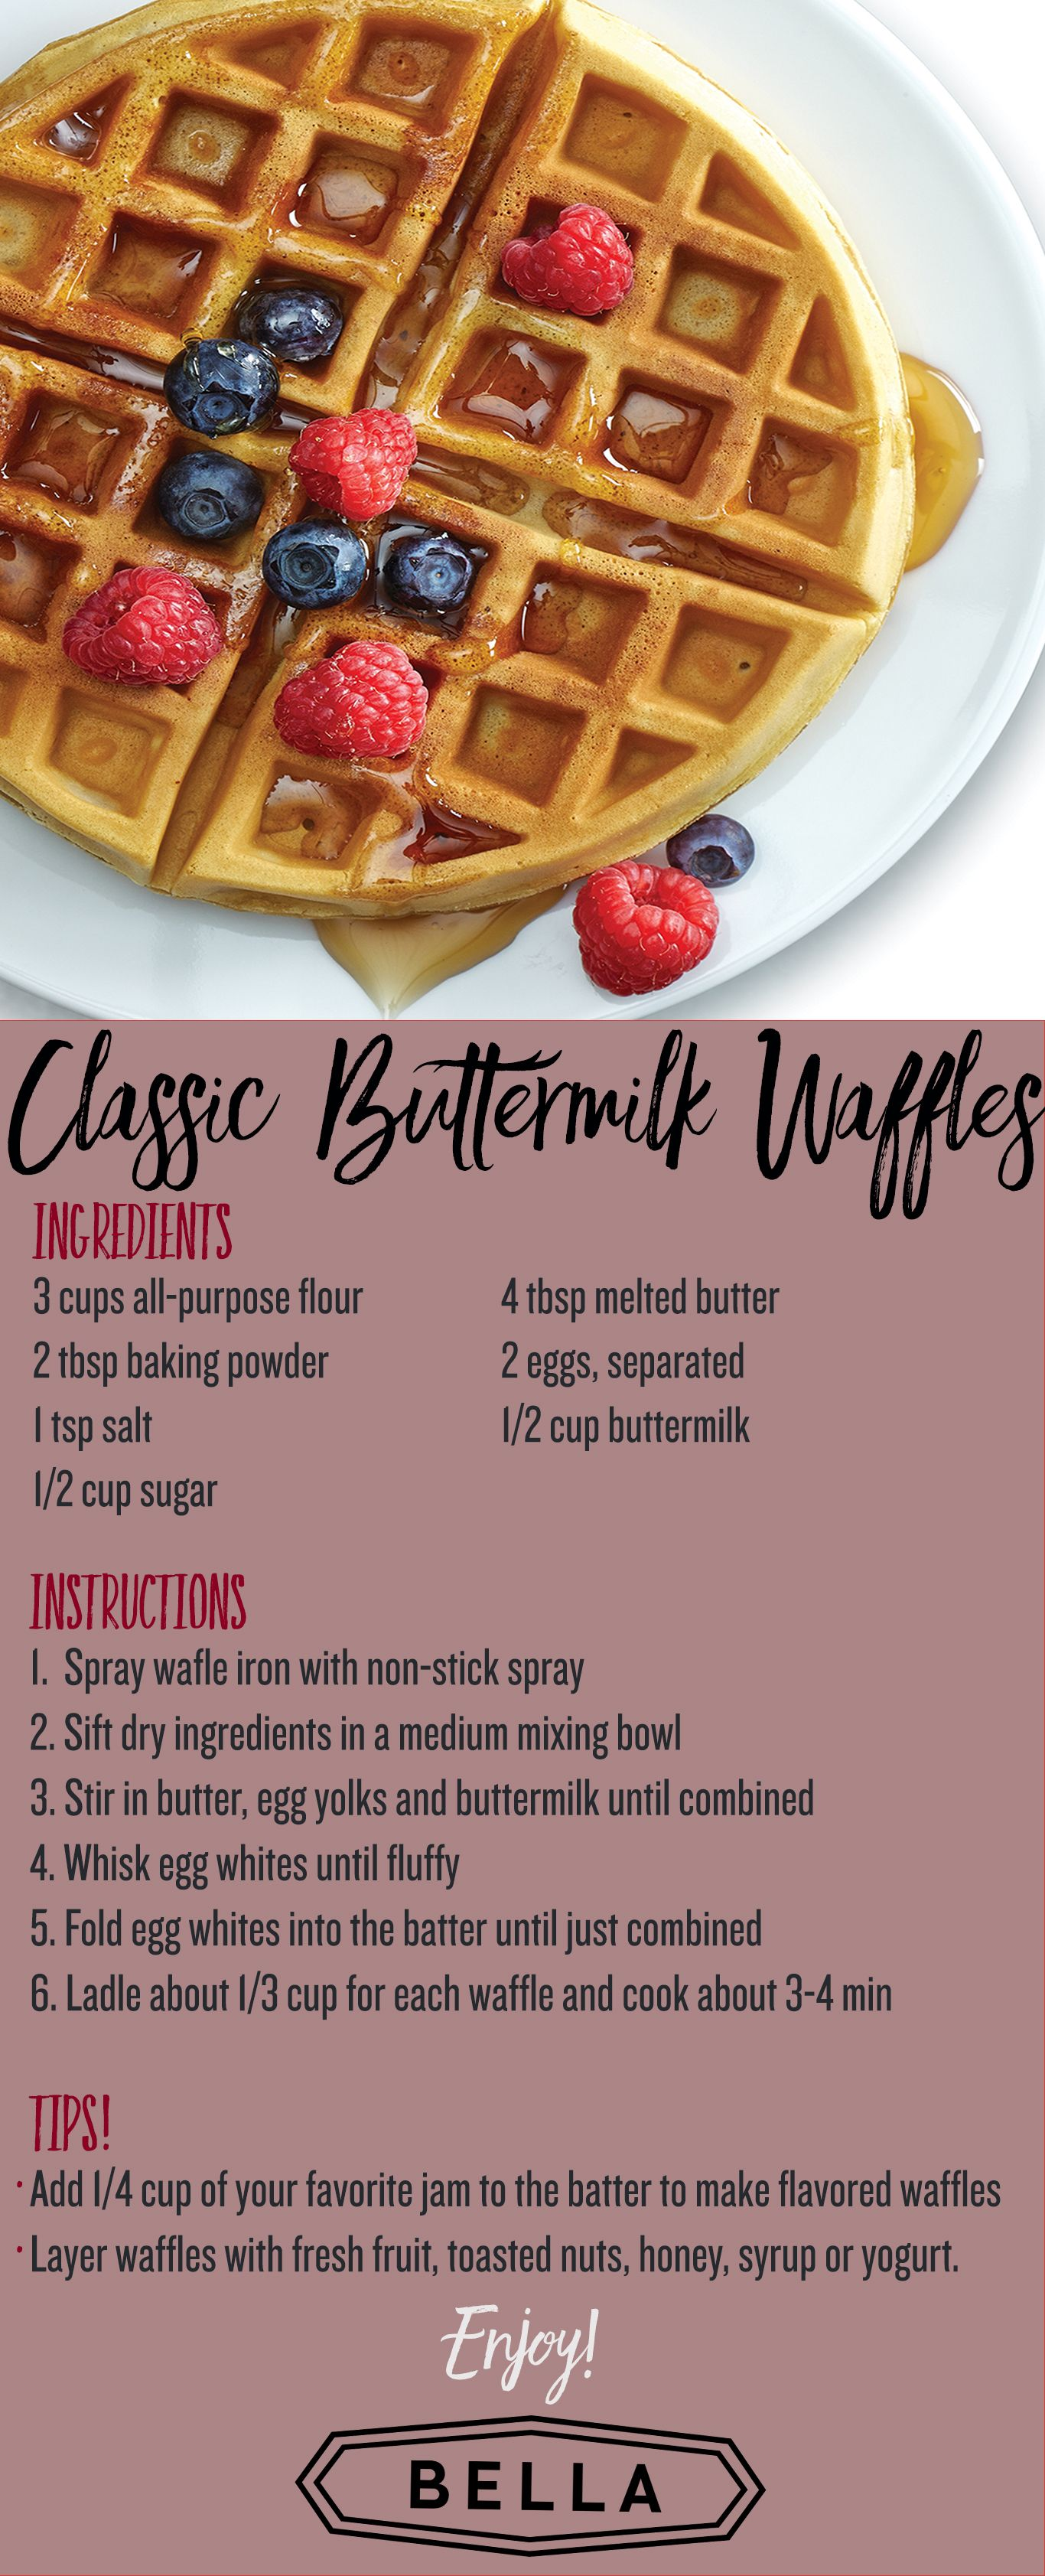 Classic Buttermilk Waffle Recipe For Your Bella Waffle Maker Waffle Maker Recipes Breakfast Waffle Maker Recipes Waffle Iron Recipes